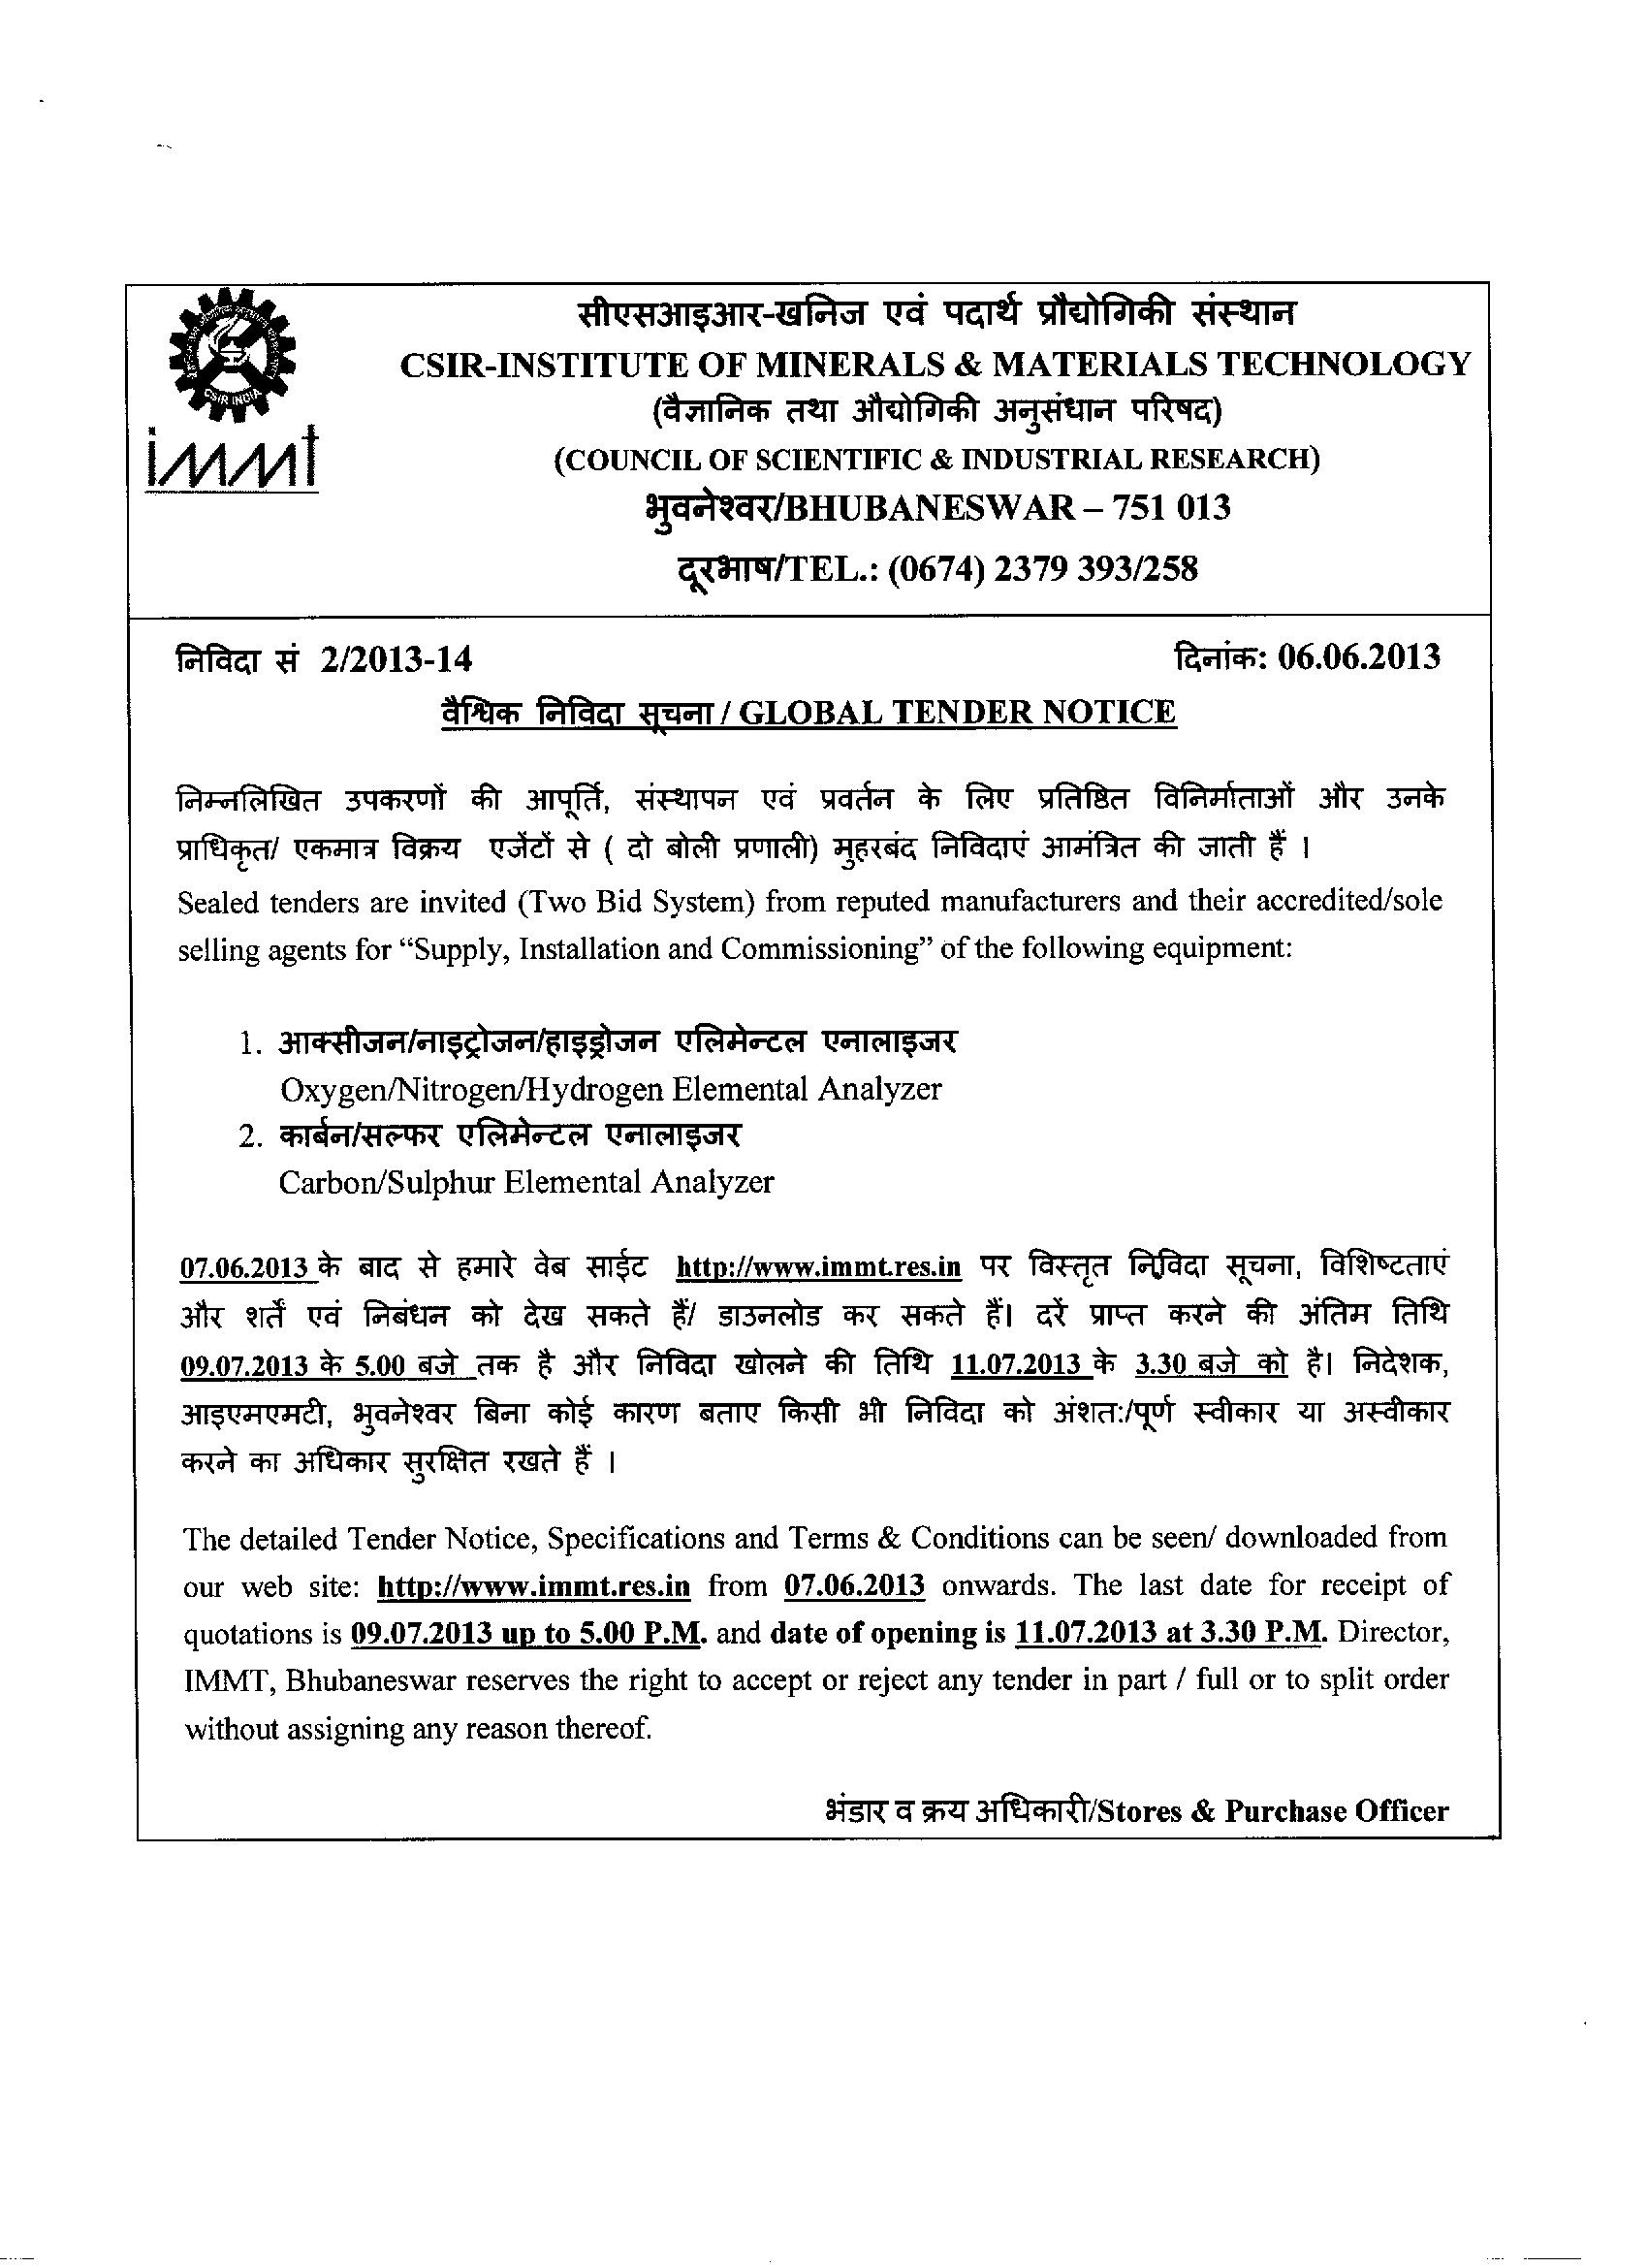 Attention indians seeking jobs in uk consulate general of india the tender no22013 14 dated 06062013 from csir institute of minerals materials technology spiritdancerdesigns Choice Image